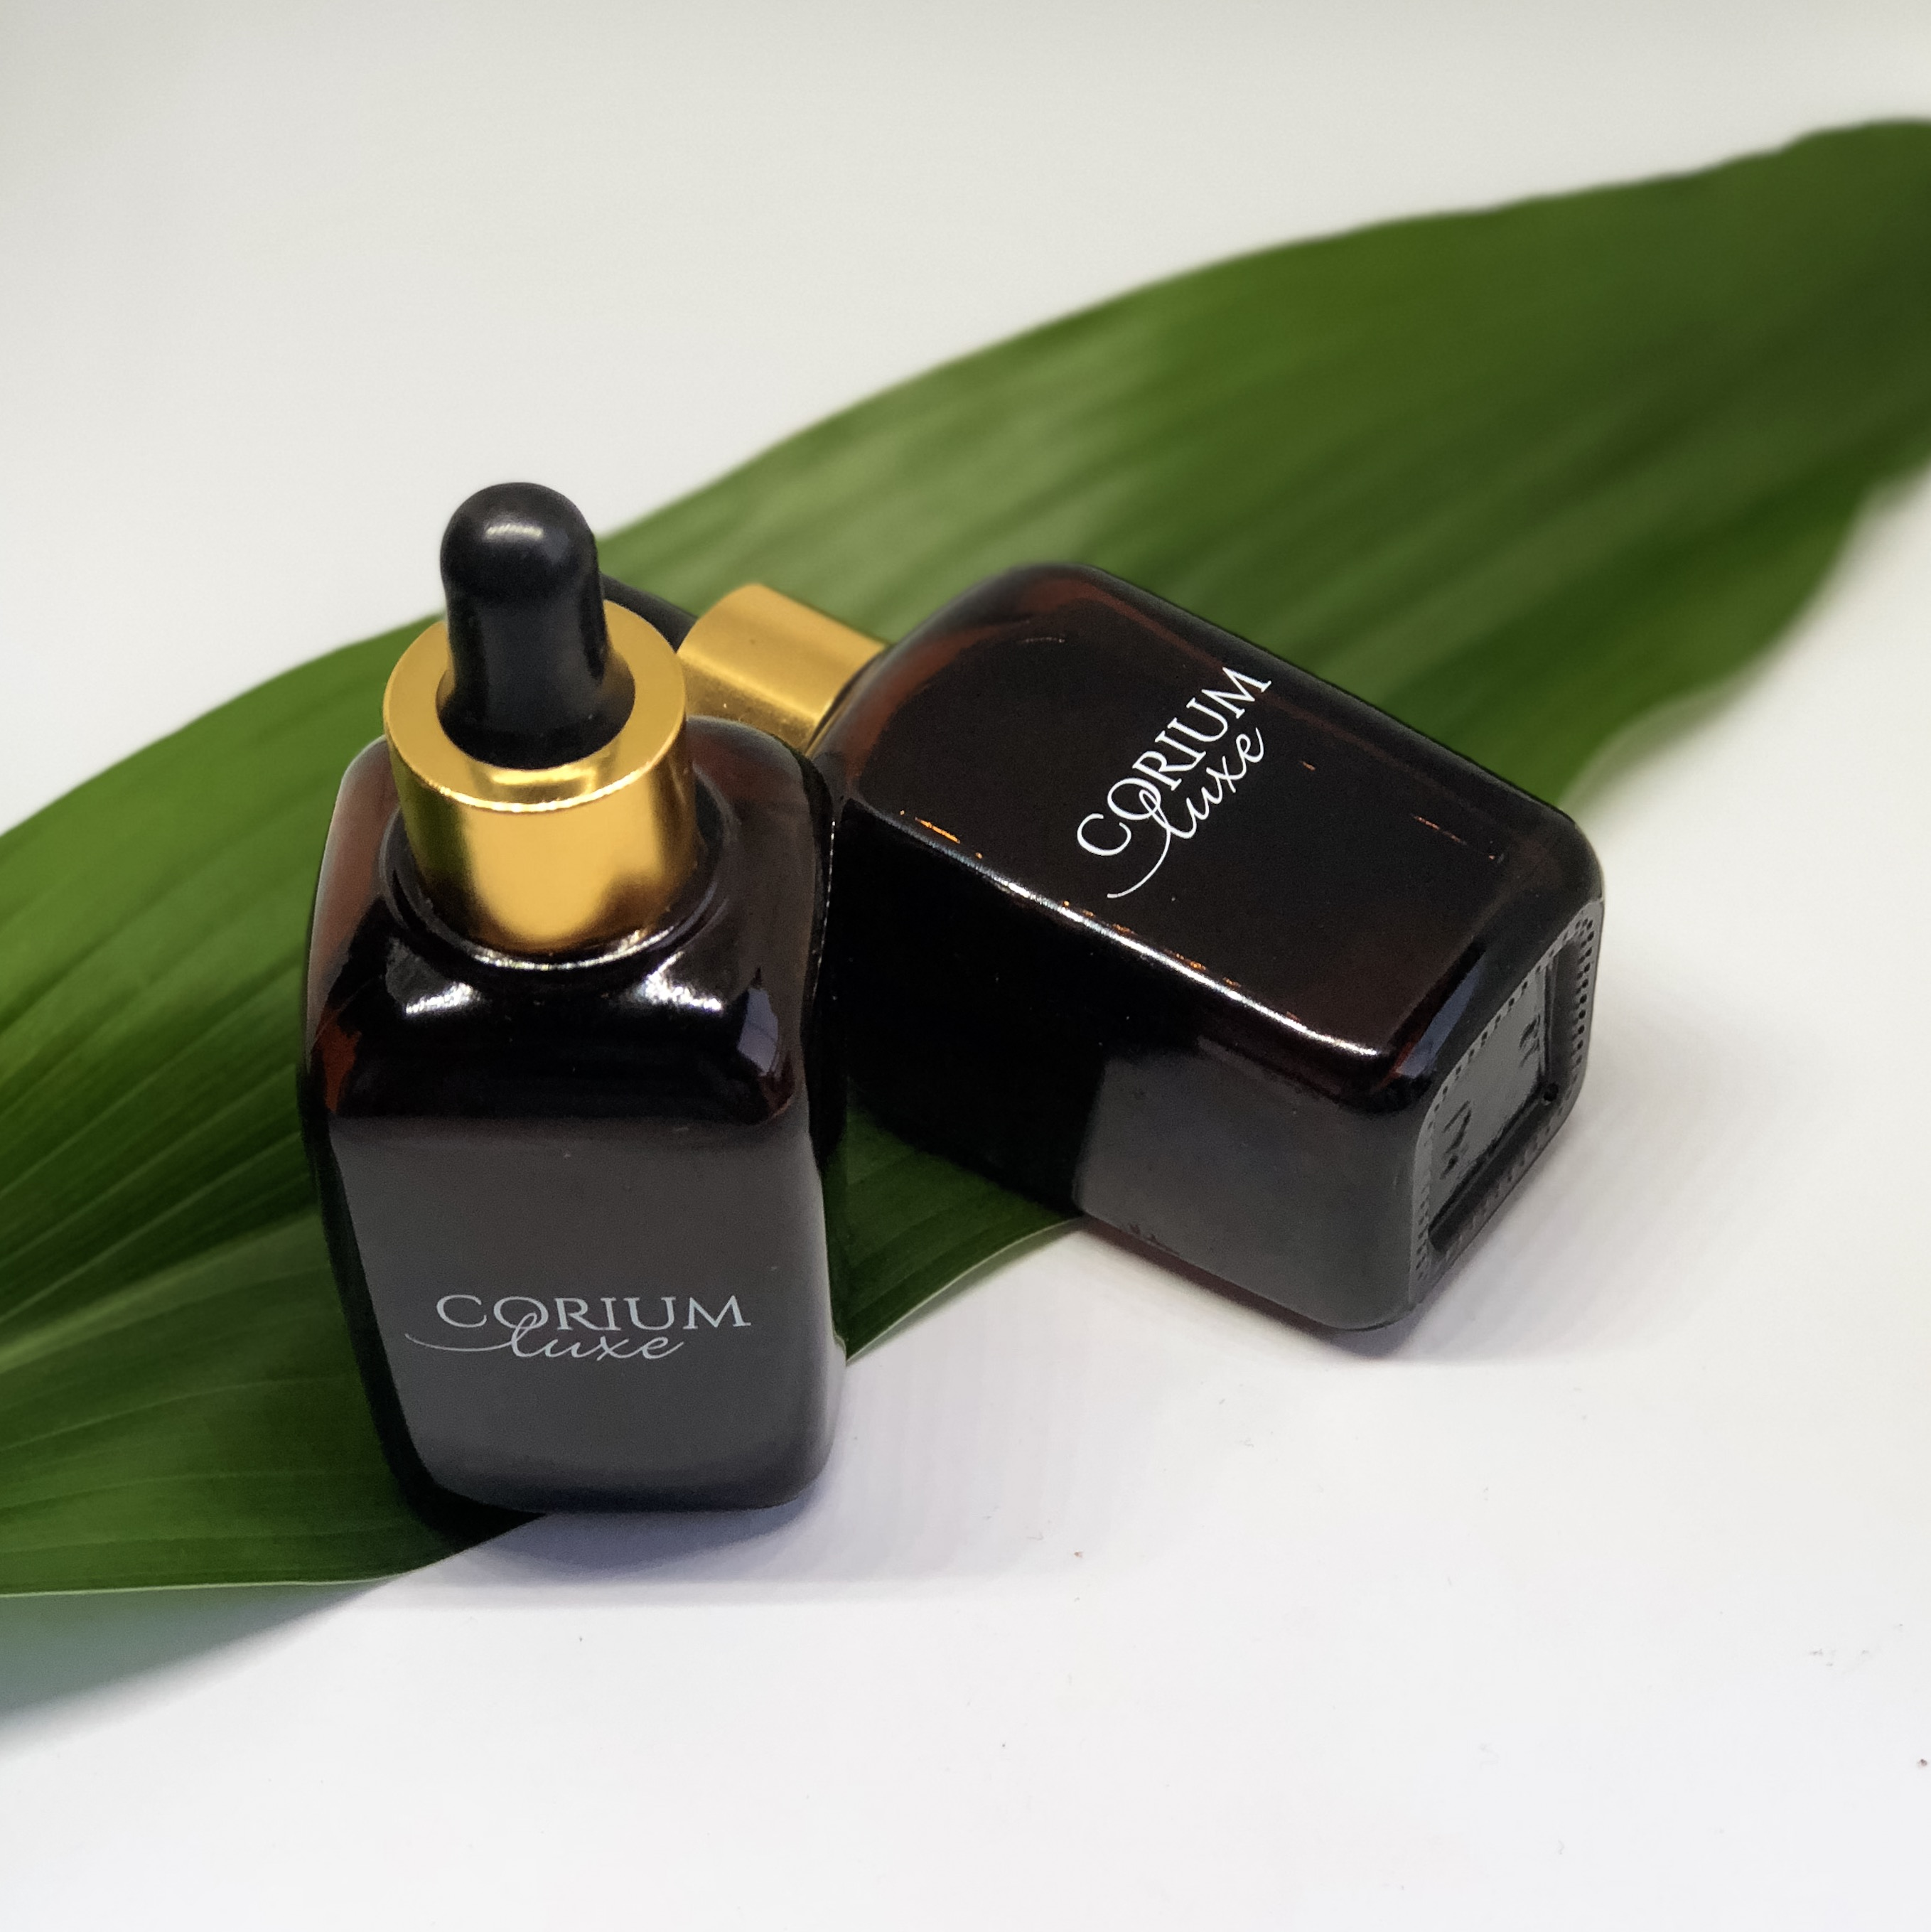 The #GlowUp Skin Combo includes the Luxe Pure Argan Oil and the Luxe Pure Moringa Oil. Both of these Luxe Oils are suitable for all skin types, and assist with the maintenance of healthy looking skin and a natural glow. Both oils have a high content of antioxidants, and Argan Oil is sebum-regulating and aids in the production of oil and the oily appearance of skin. Moringa is the buzzword of our times and is a superfood. Both oils are anti-inflammatory and will keep your skin on its A-game.